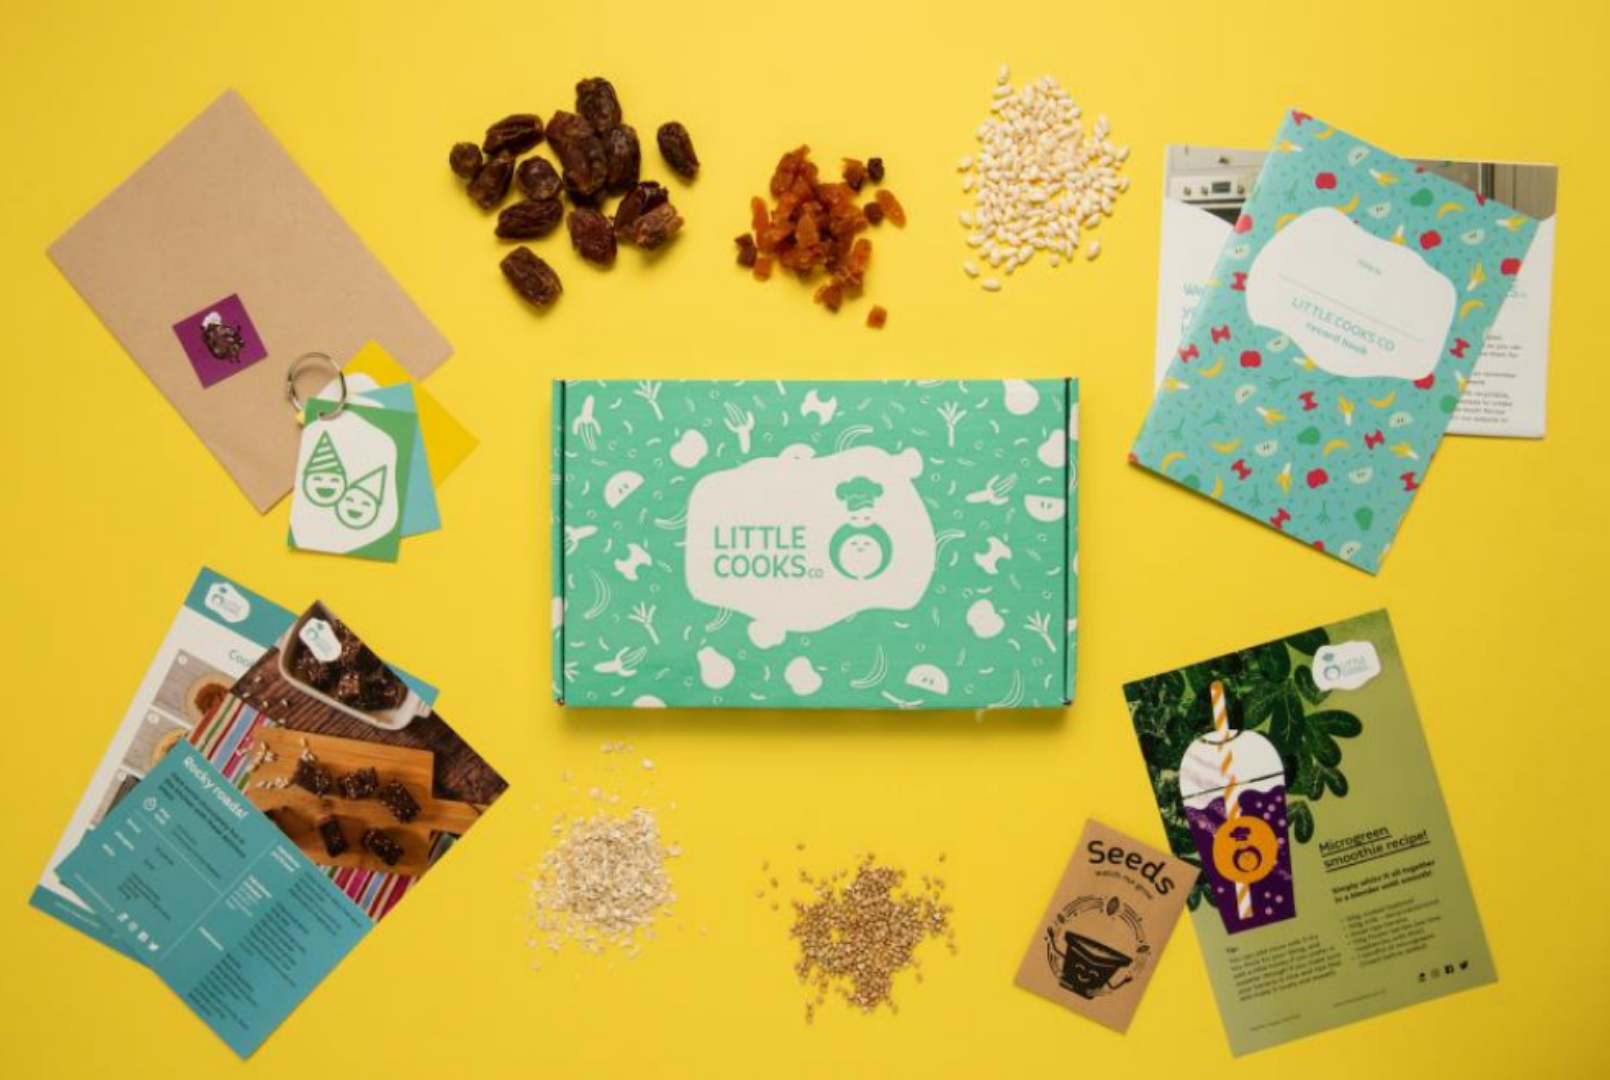 Little Cooks Co box contents on yellow background